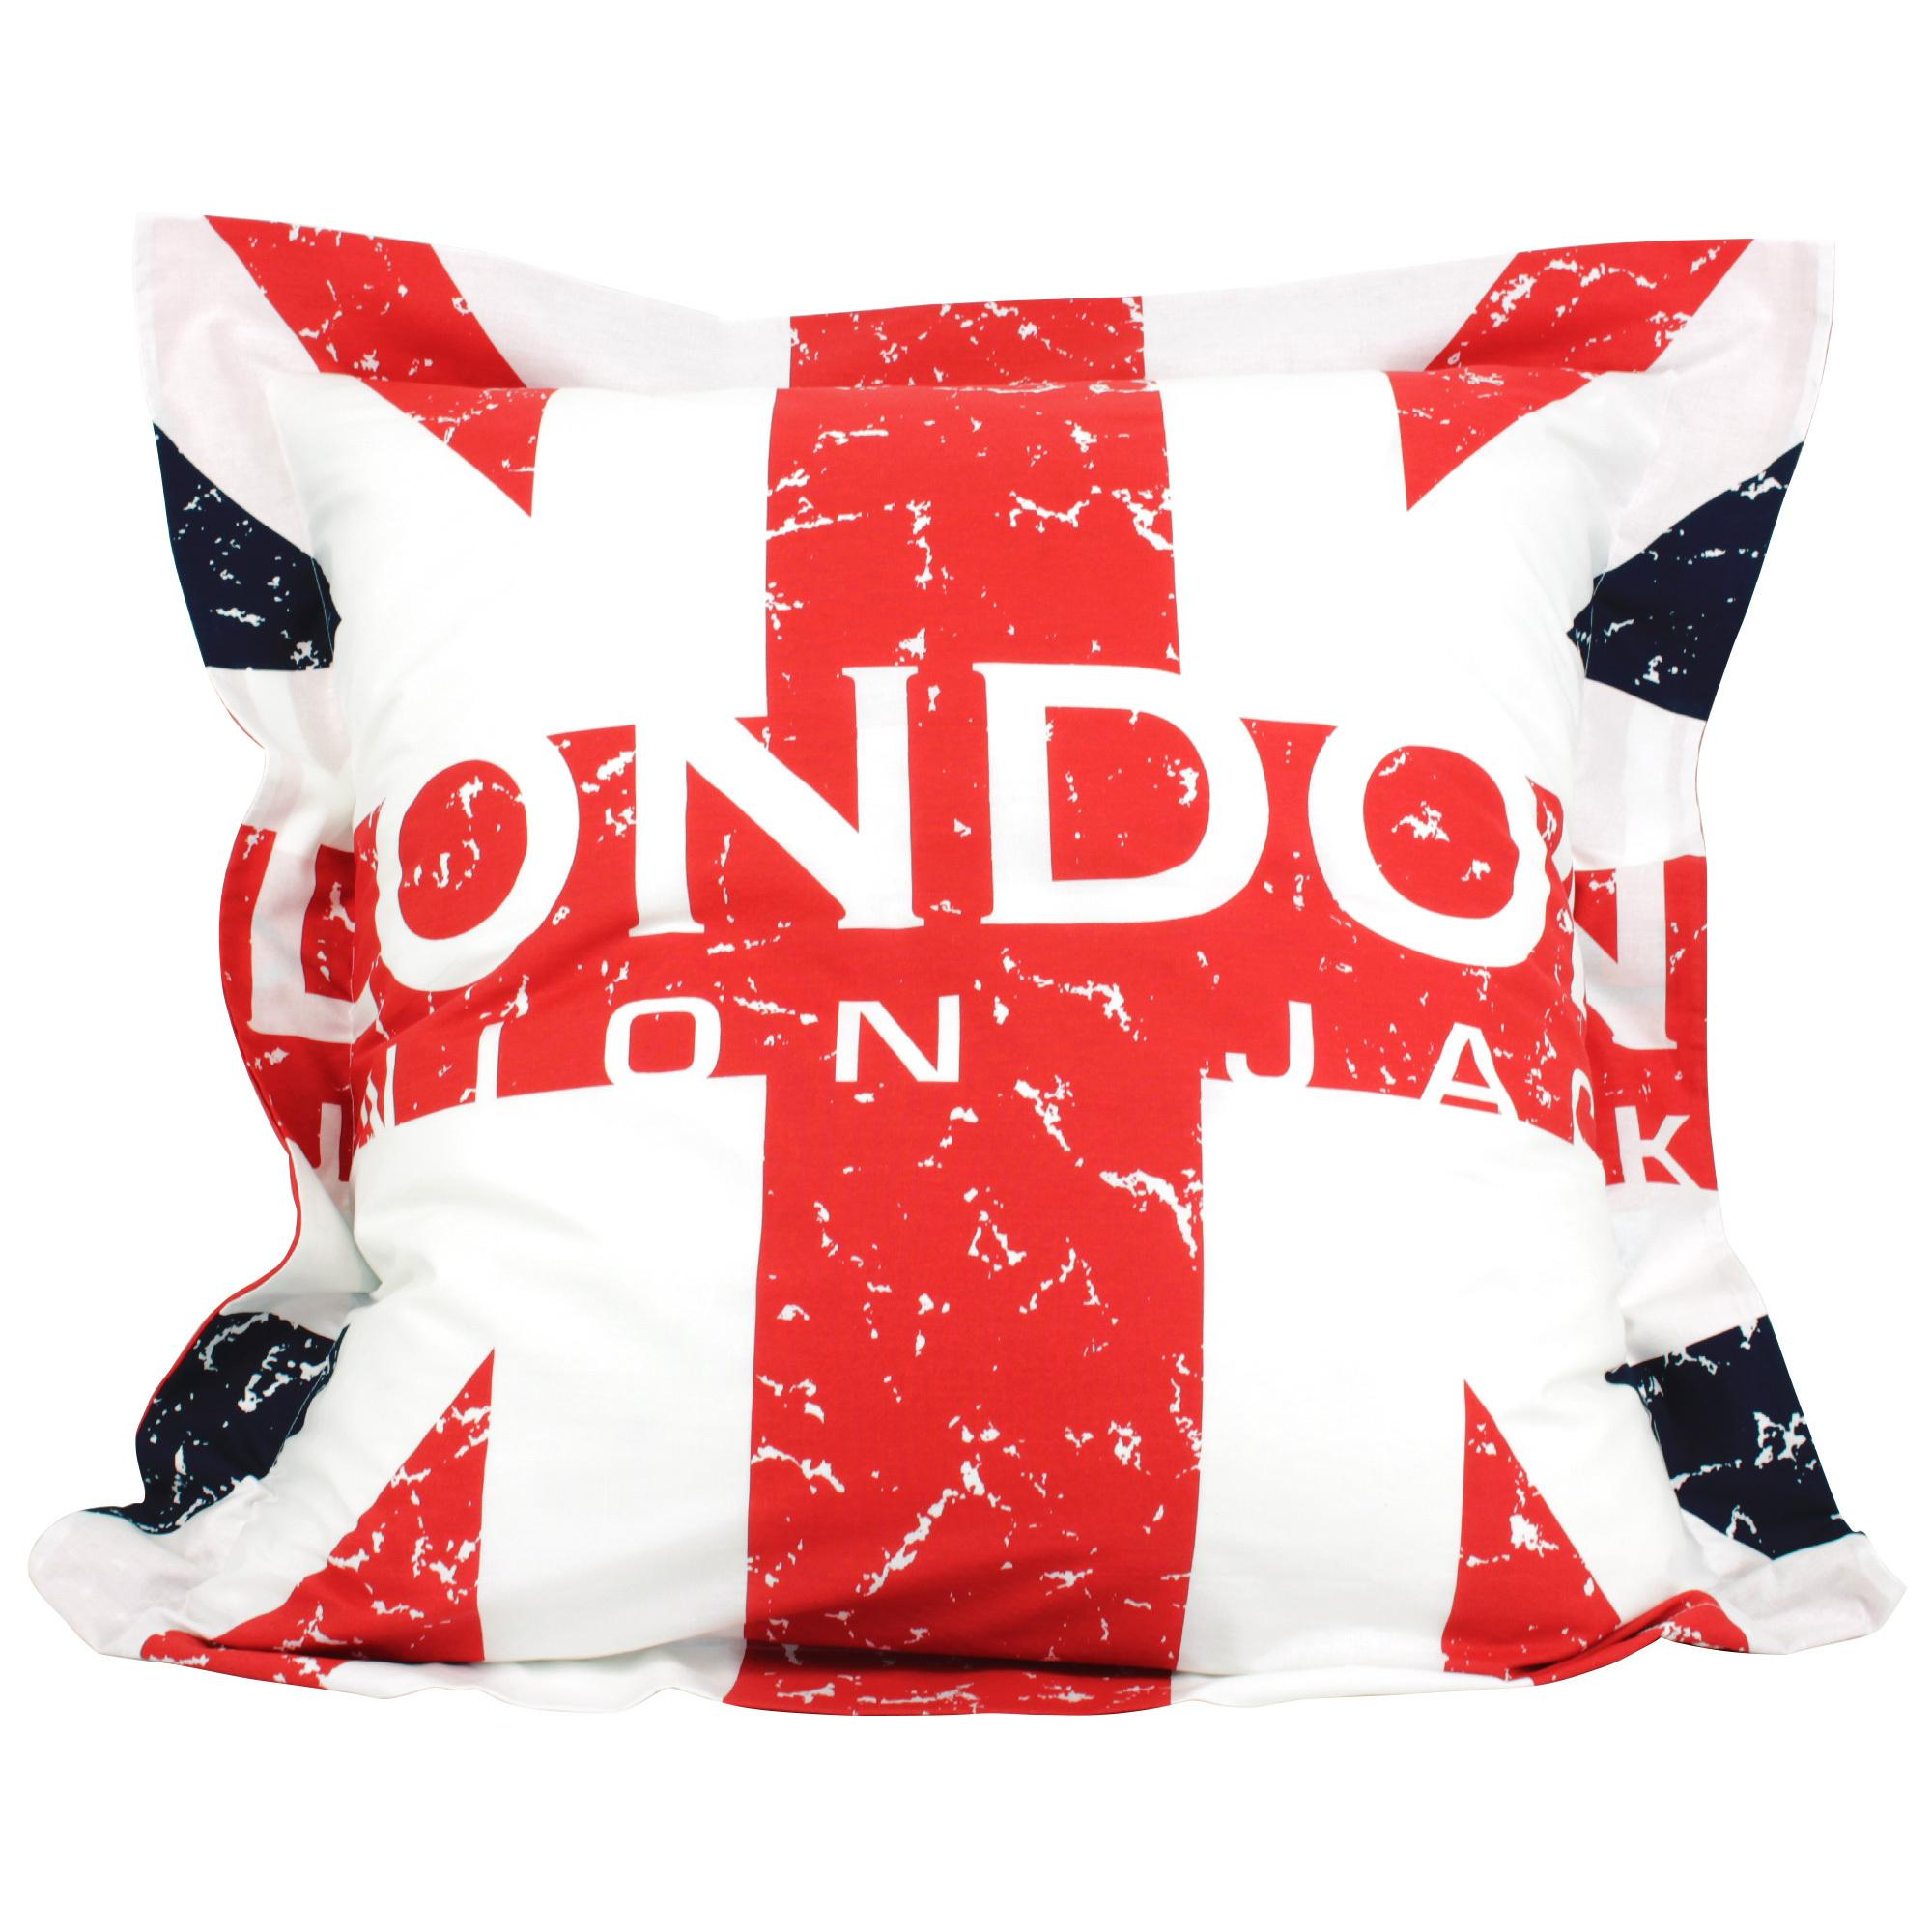 parure de lit 200x200 cm london union jack linnea vente de linge de maison. Black Bedroom Furniture Sets. Home Design Ideas